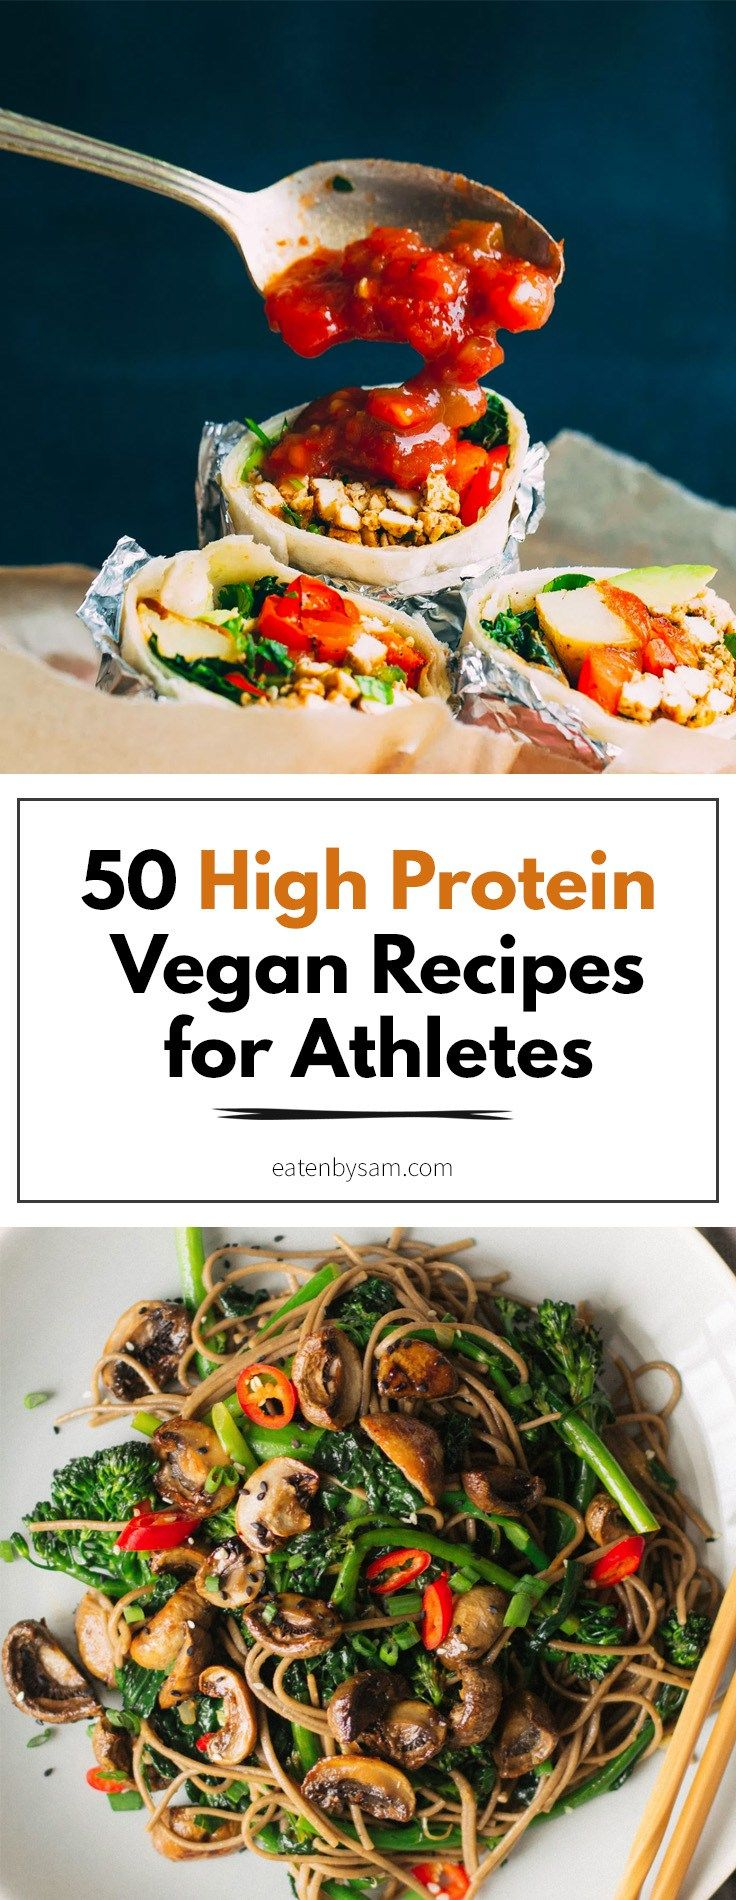 50 High Protein Vegan Recipes For Athletes Mouthwatering